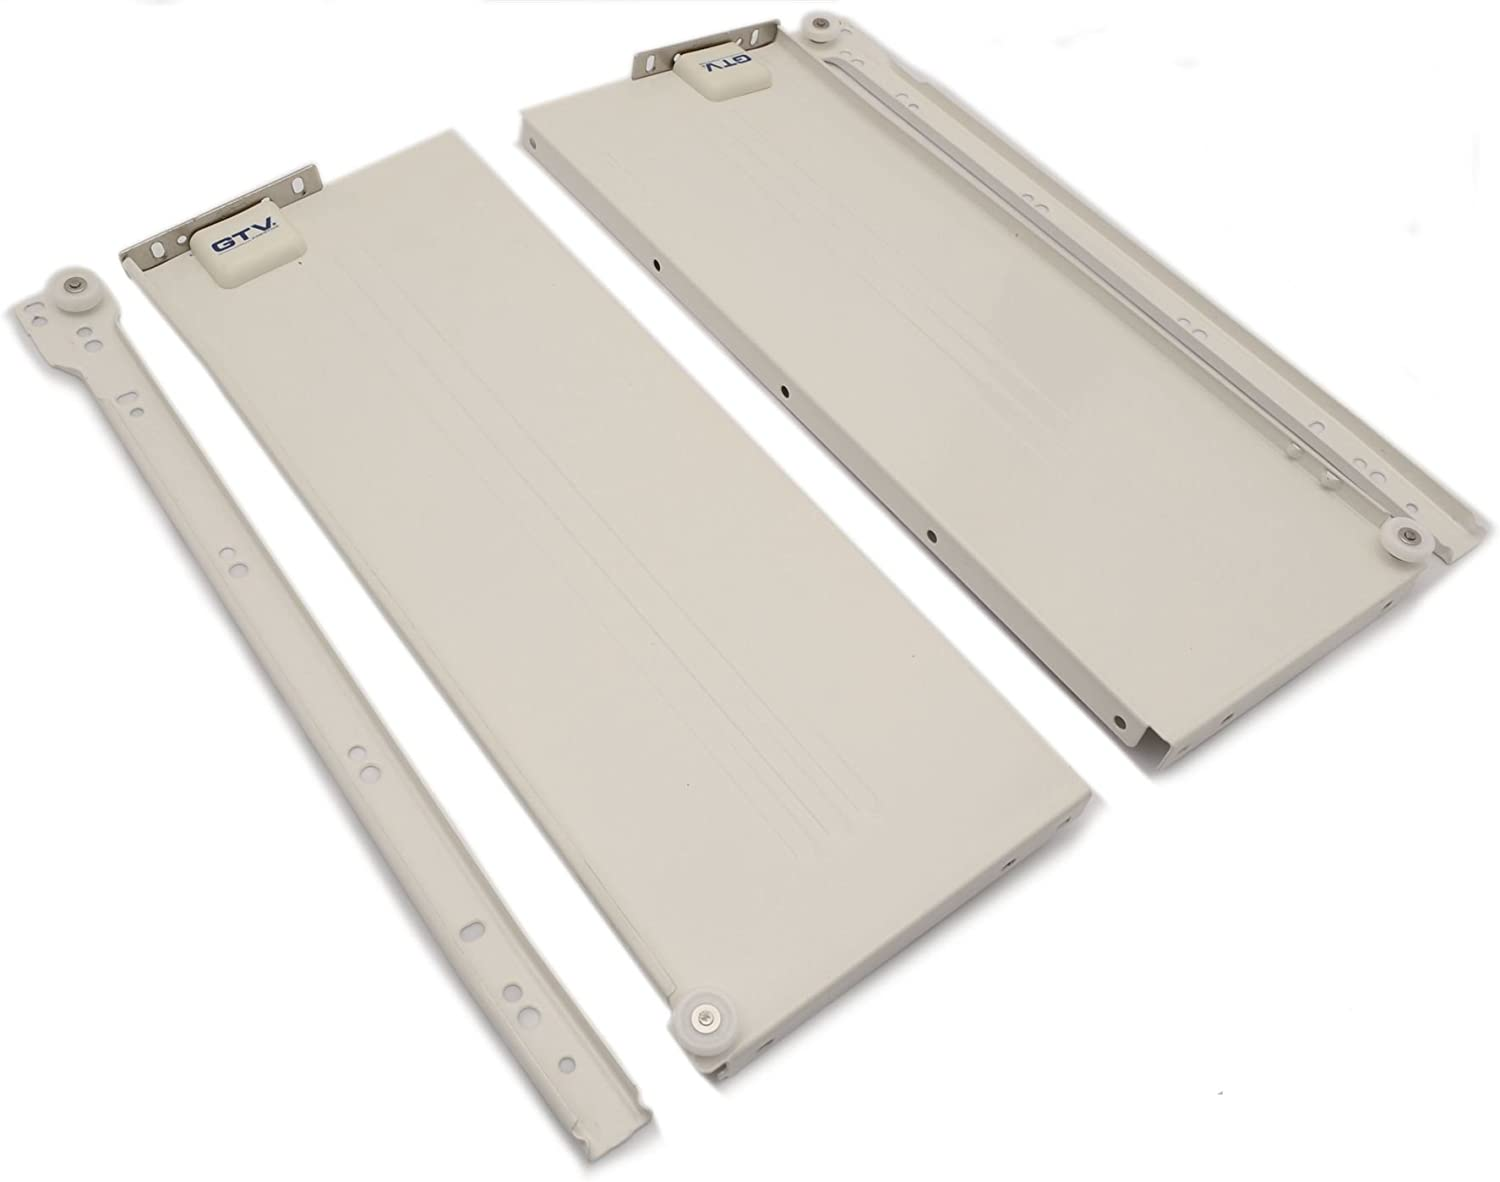 Metabox Metal Drawers Sides//Runners Slides Rollers Set White H86 mm L400 mm